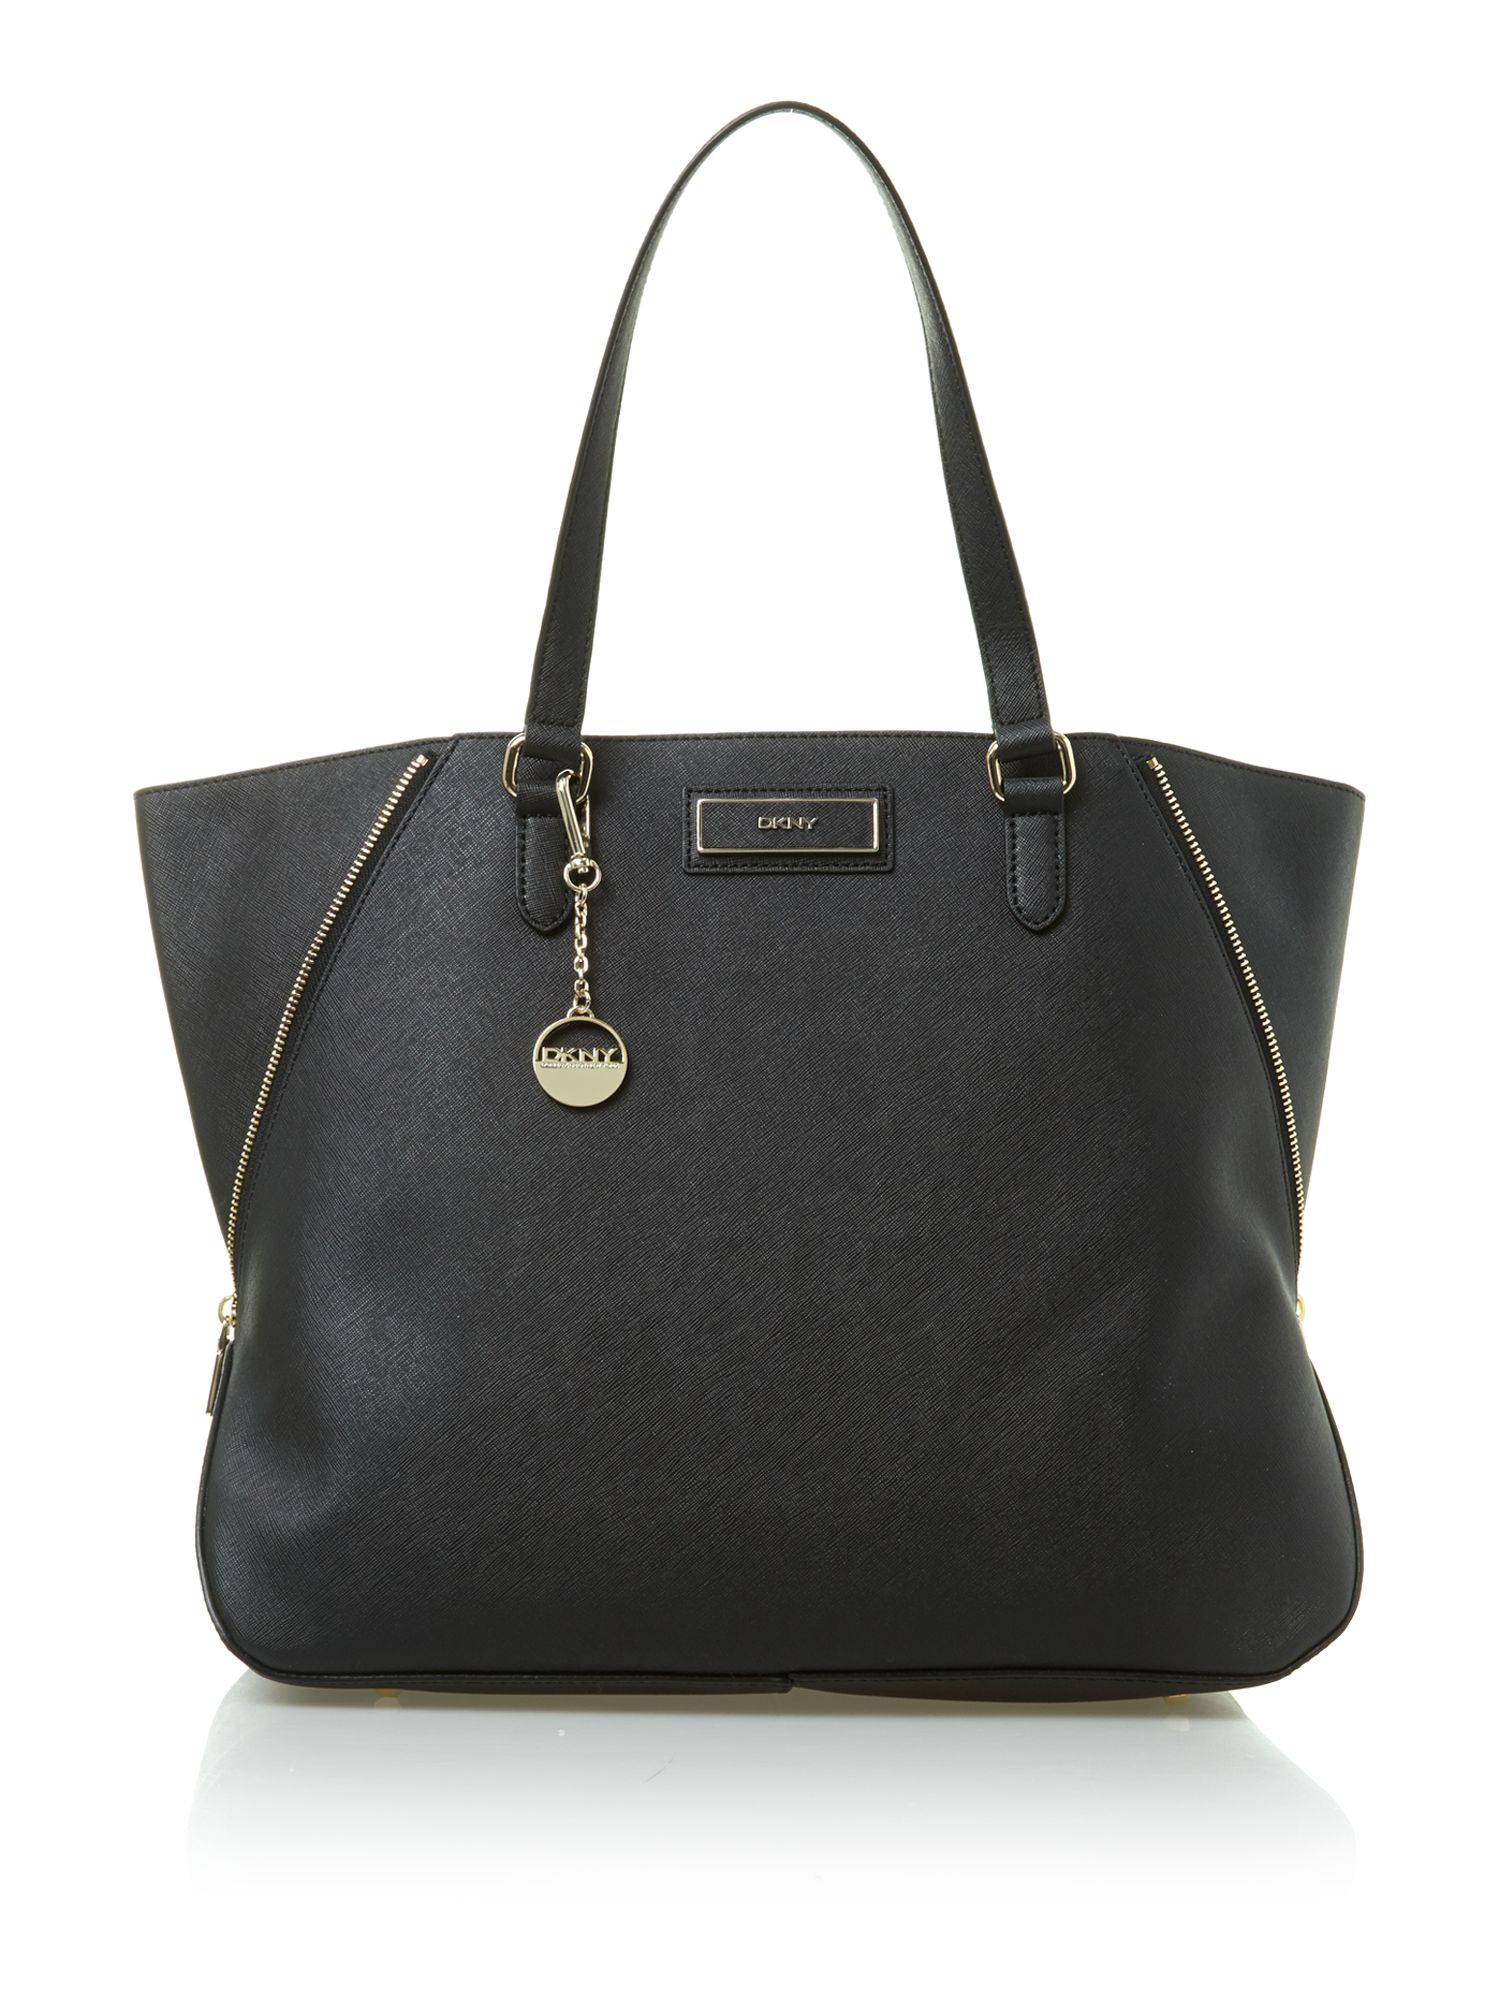 Saffiano large black tote bag